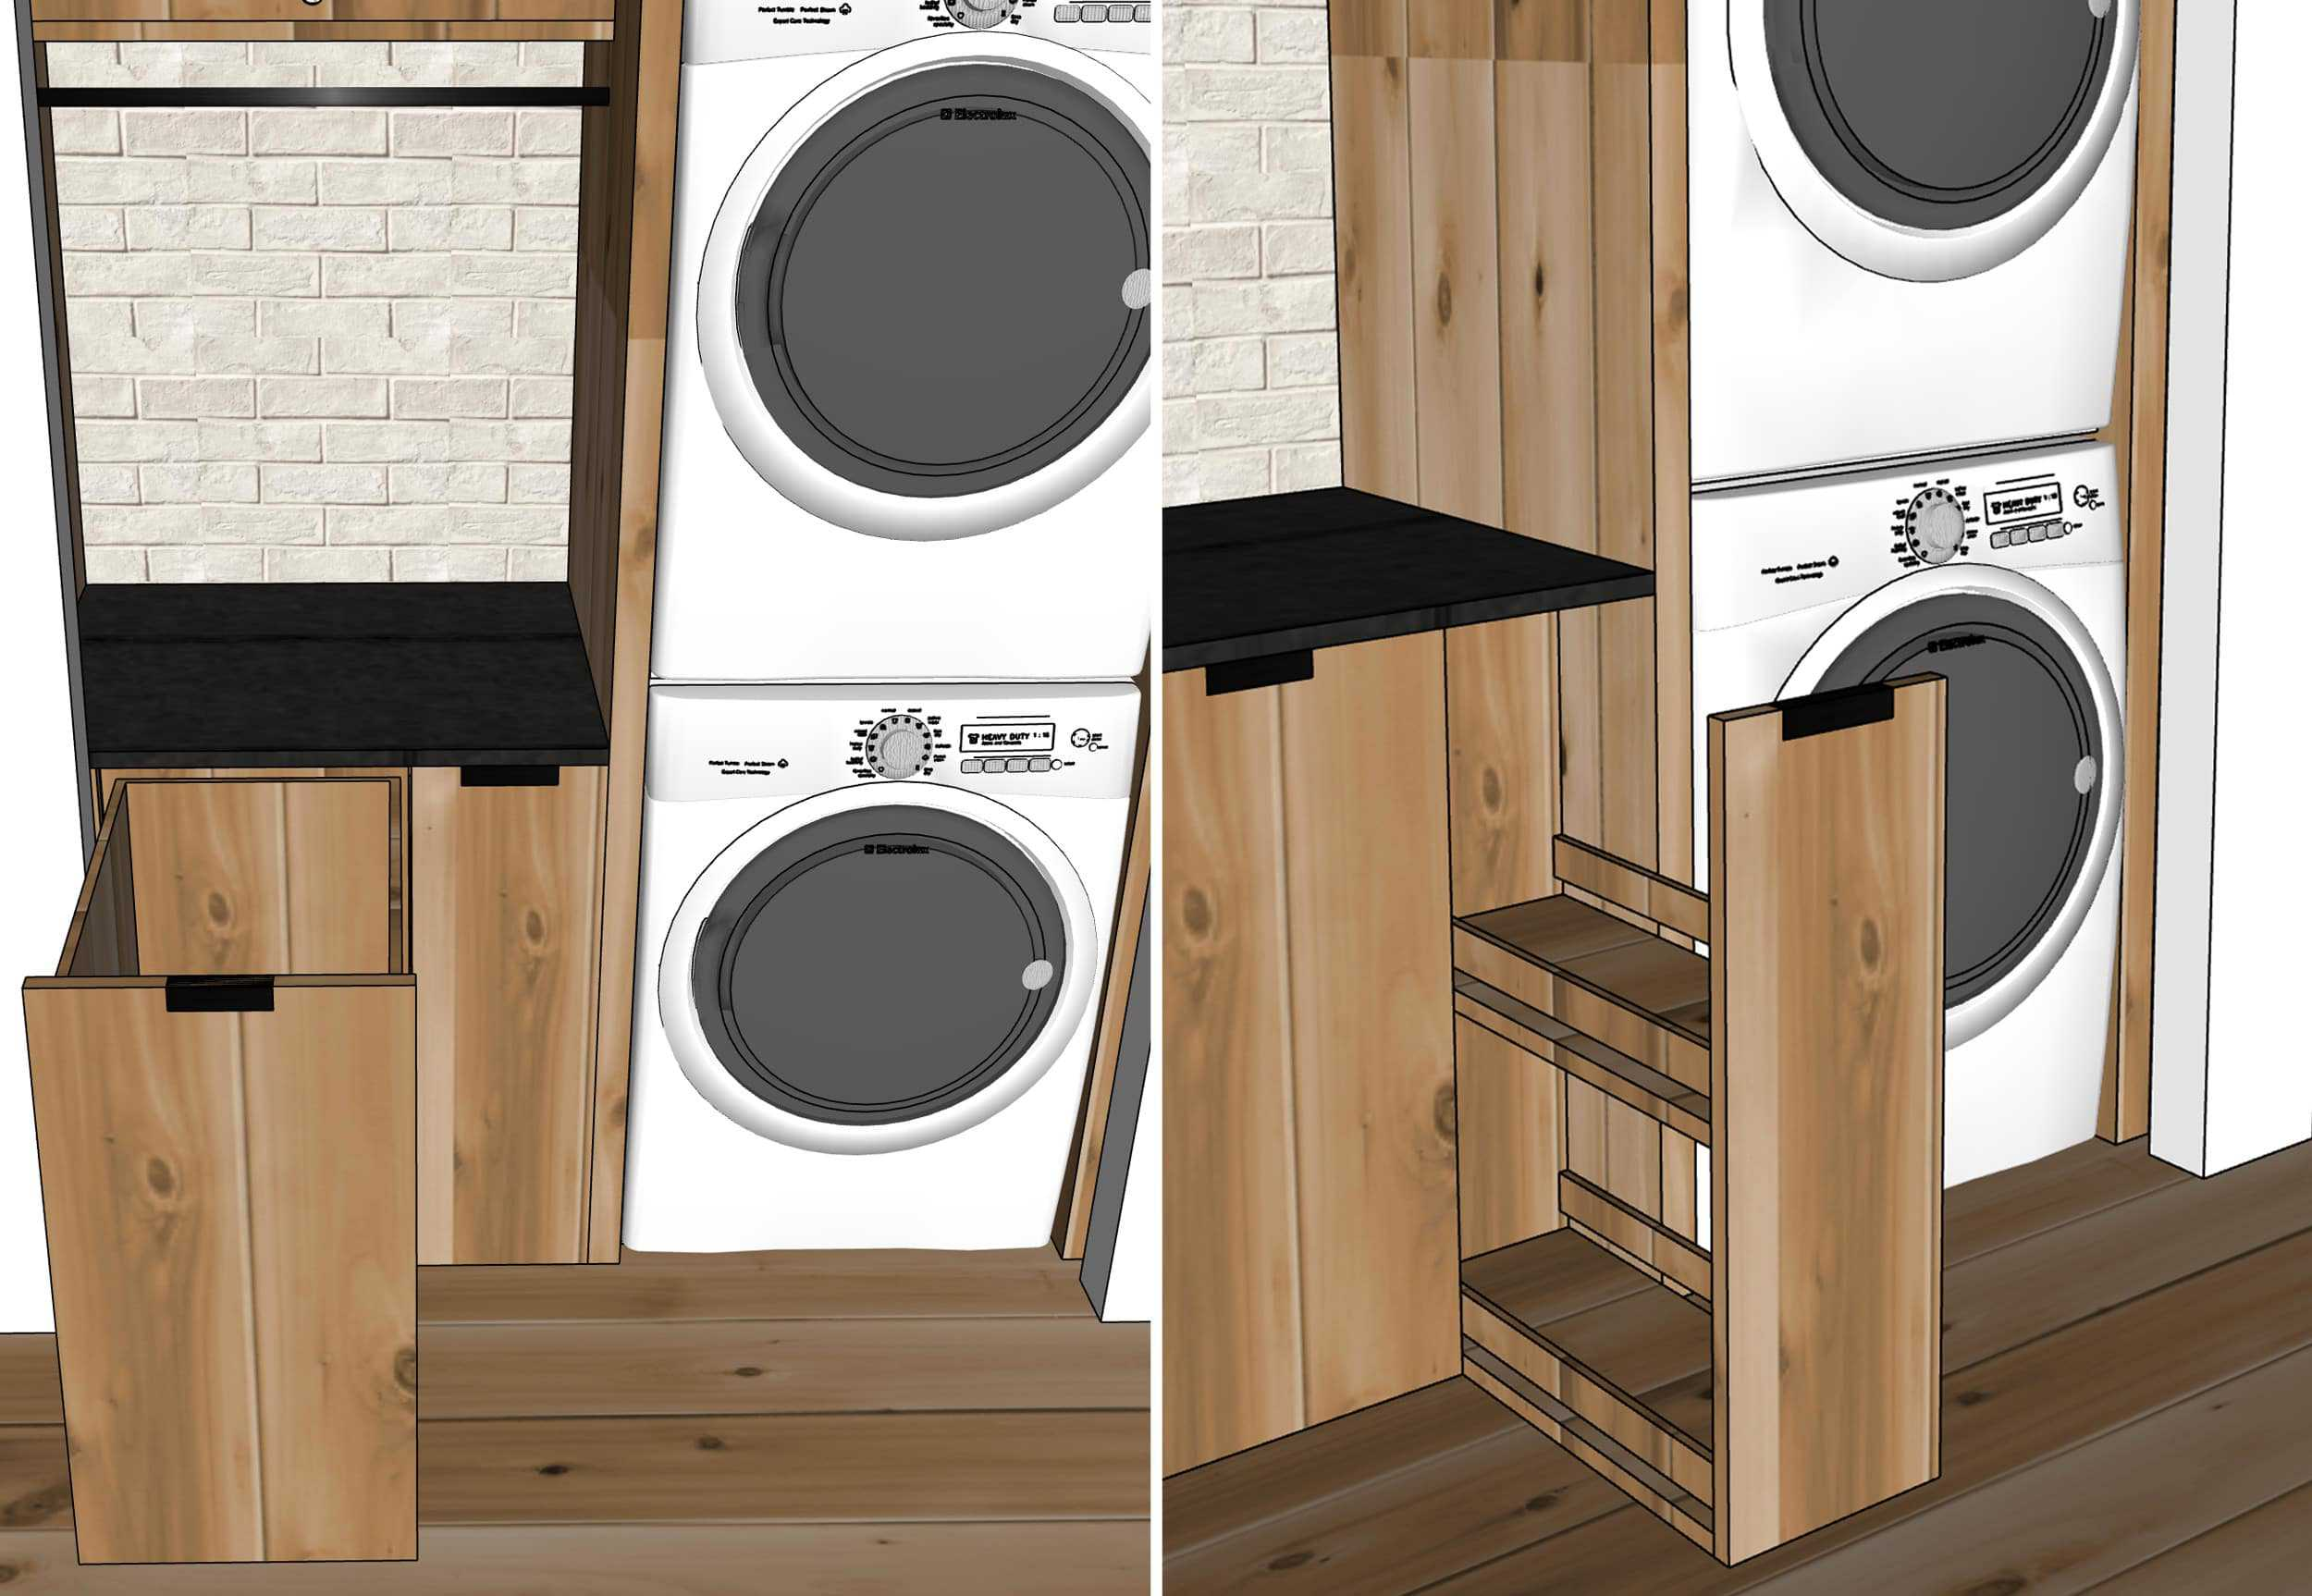 Emily Henderson Mountain House Laundry Sketchup Design Details Side By Side